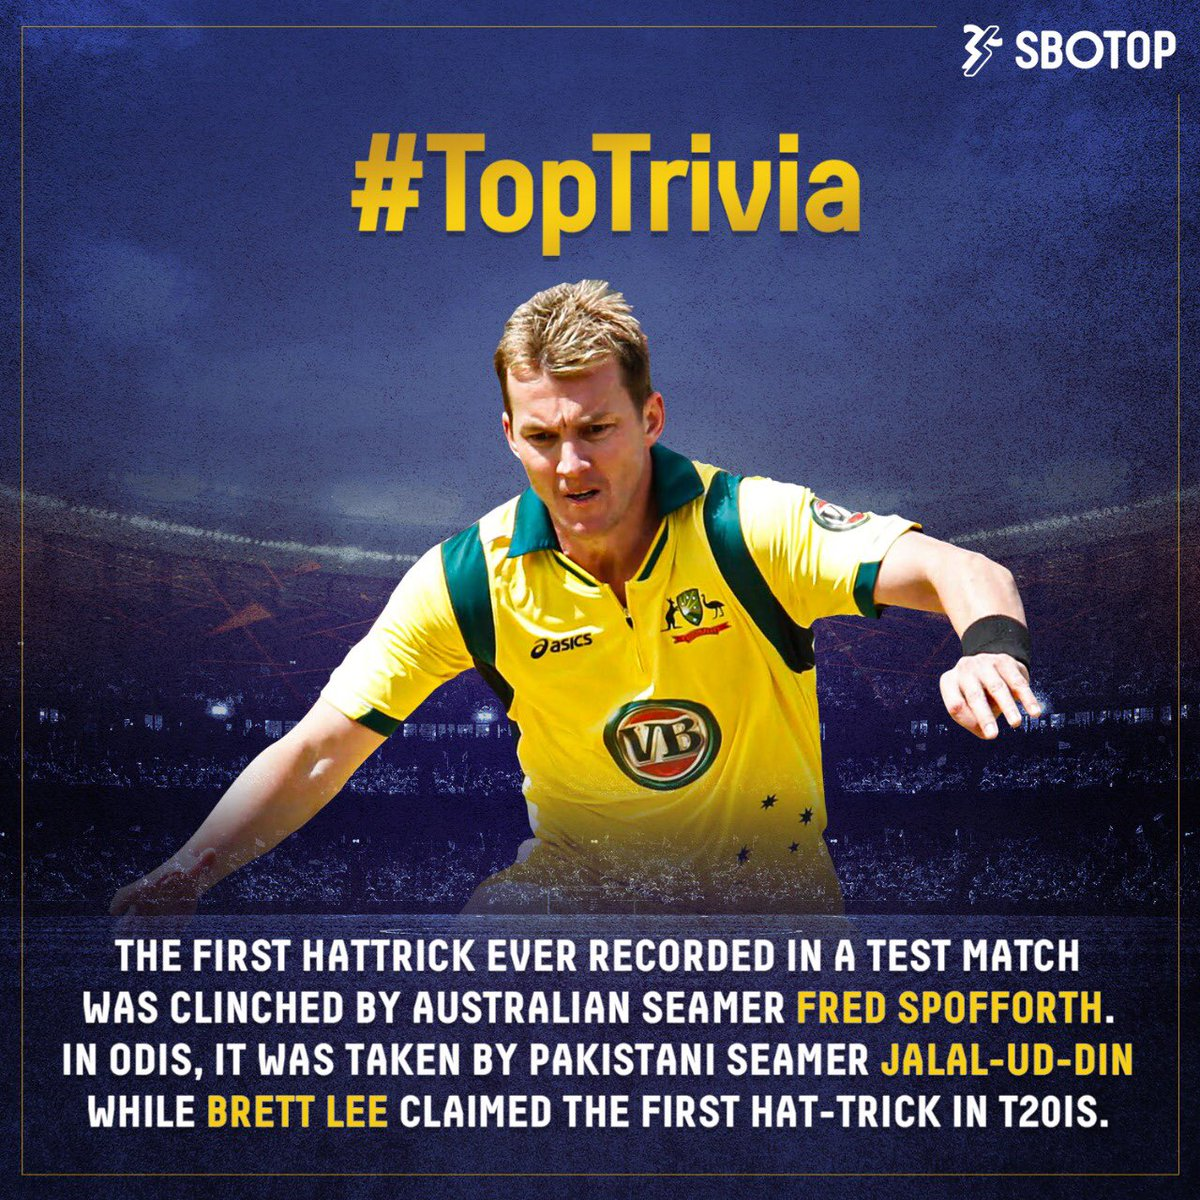 First to milestones are always remembered fondly but how many of you were aware of these mindblowing feats? 🤯  #Cricket #Hattrick #ODI #Test #T20I #BrettLee #FrankSpofforth #JalalUdDinn #CricketAustralia #CricketPakistan #PCB #AustralianCricket #CricketFacts #CricketTrivia